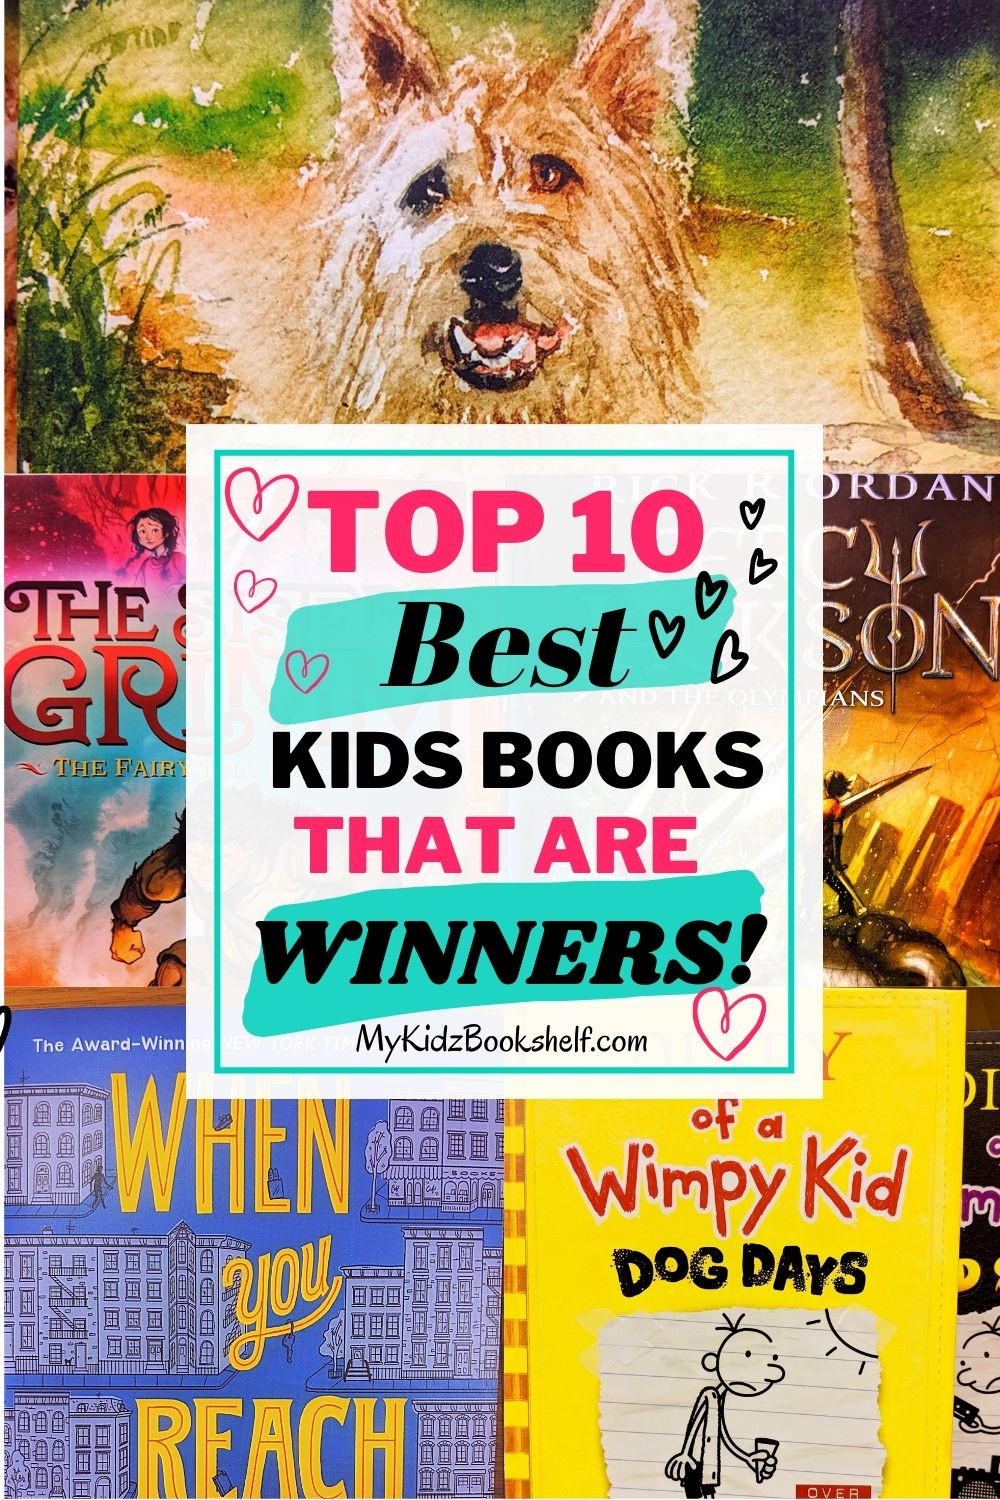 Top 10 Best Kids Books that are winners book covers with dog